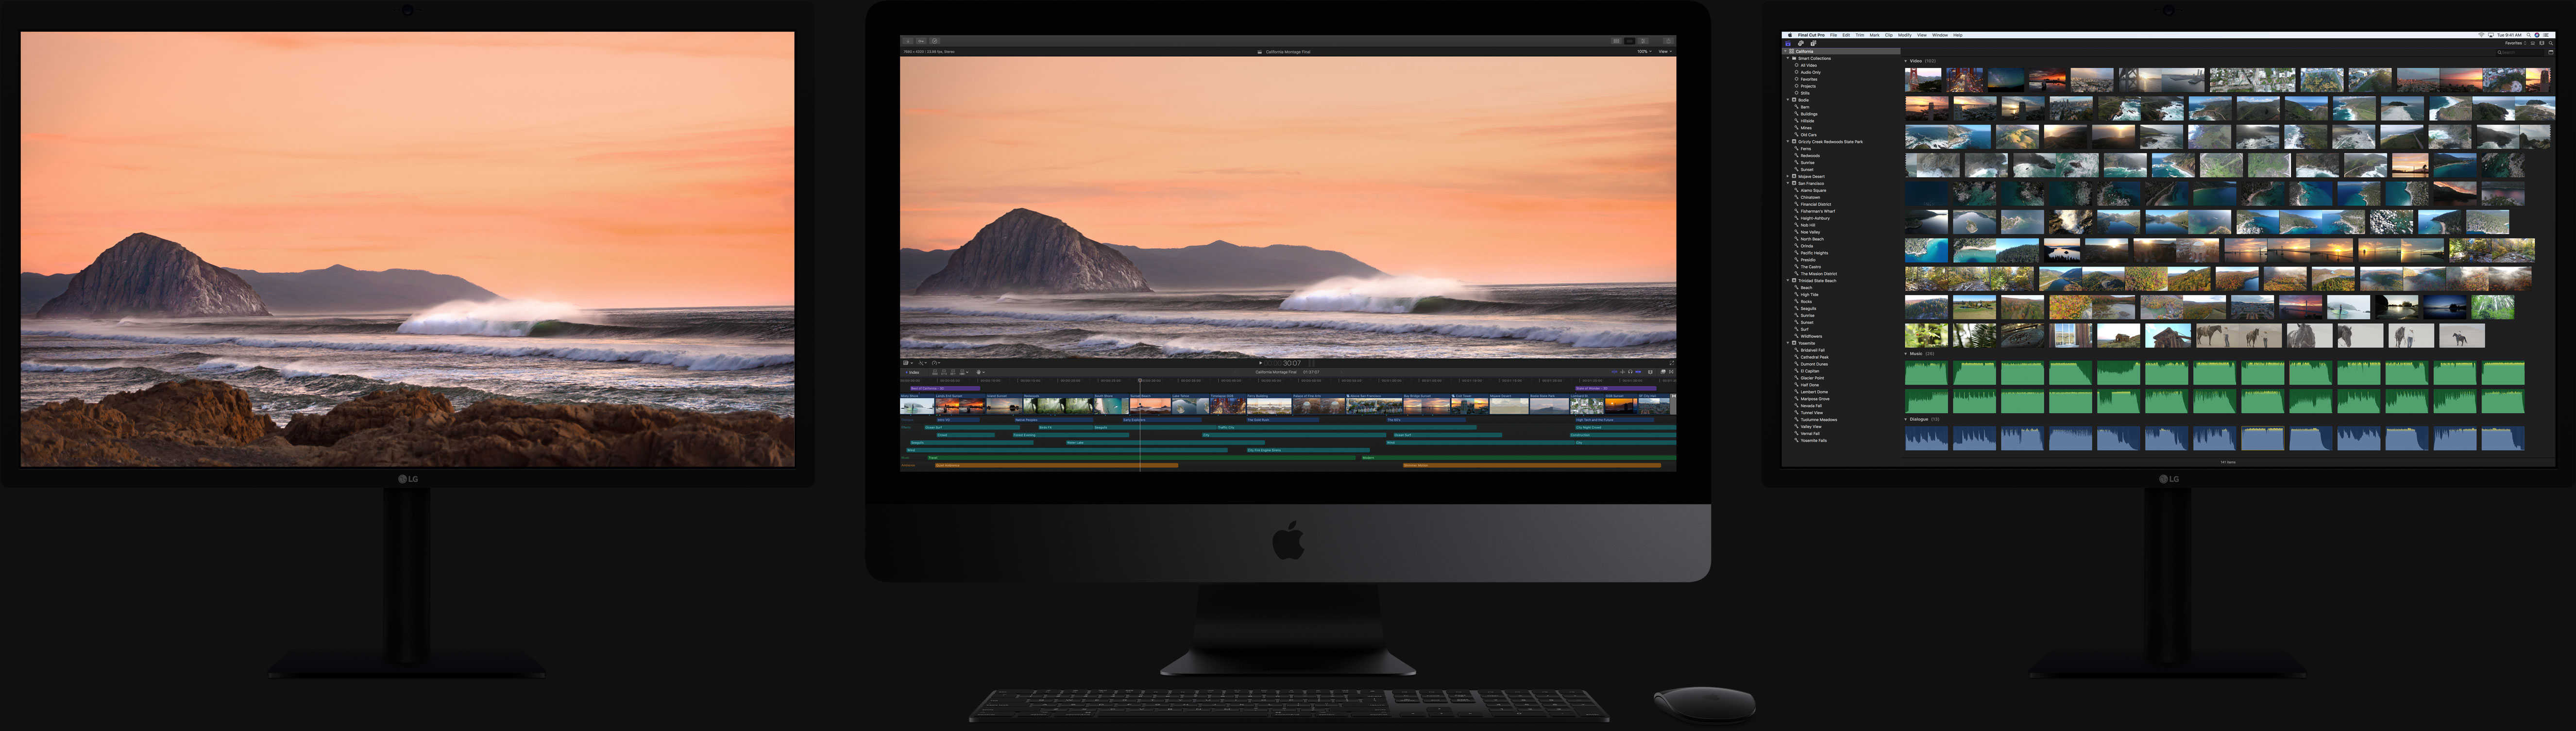 Final Cut Pro X 10 4 launches with support for HDR, HEVC